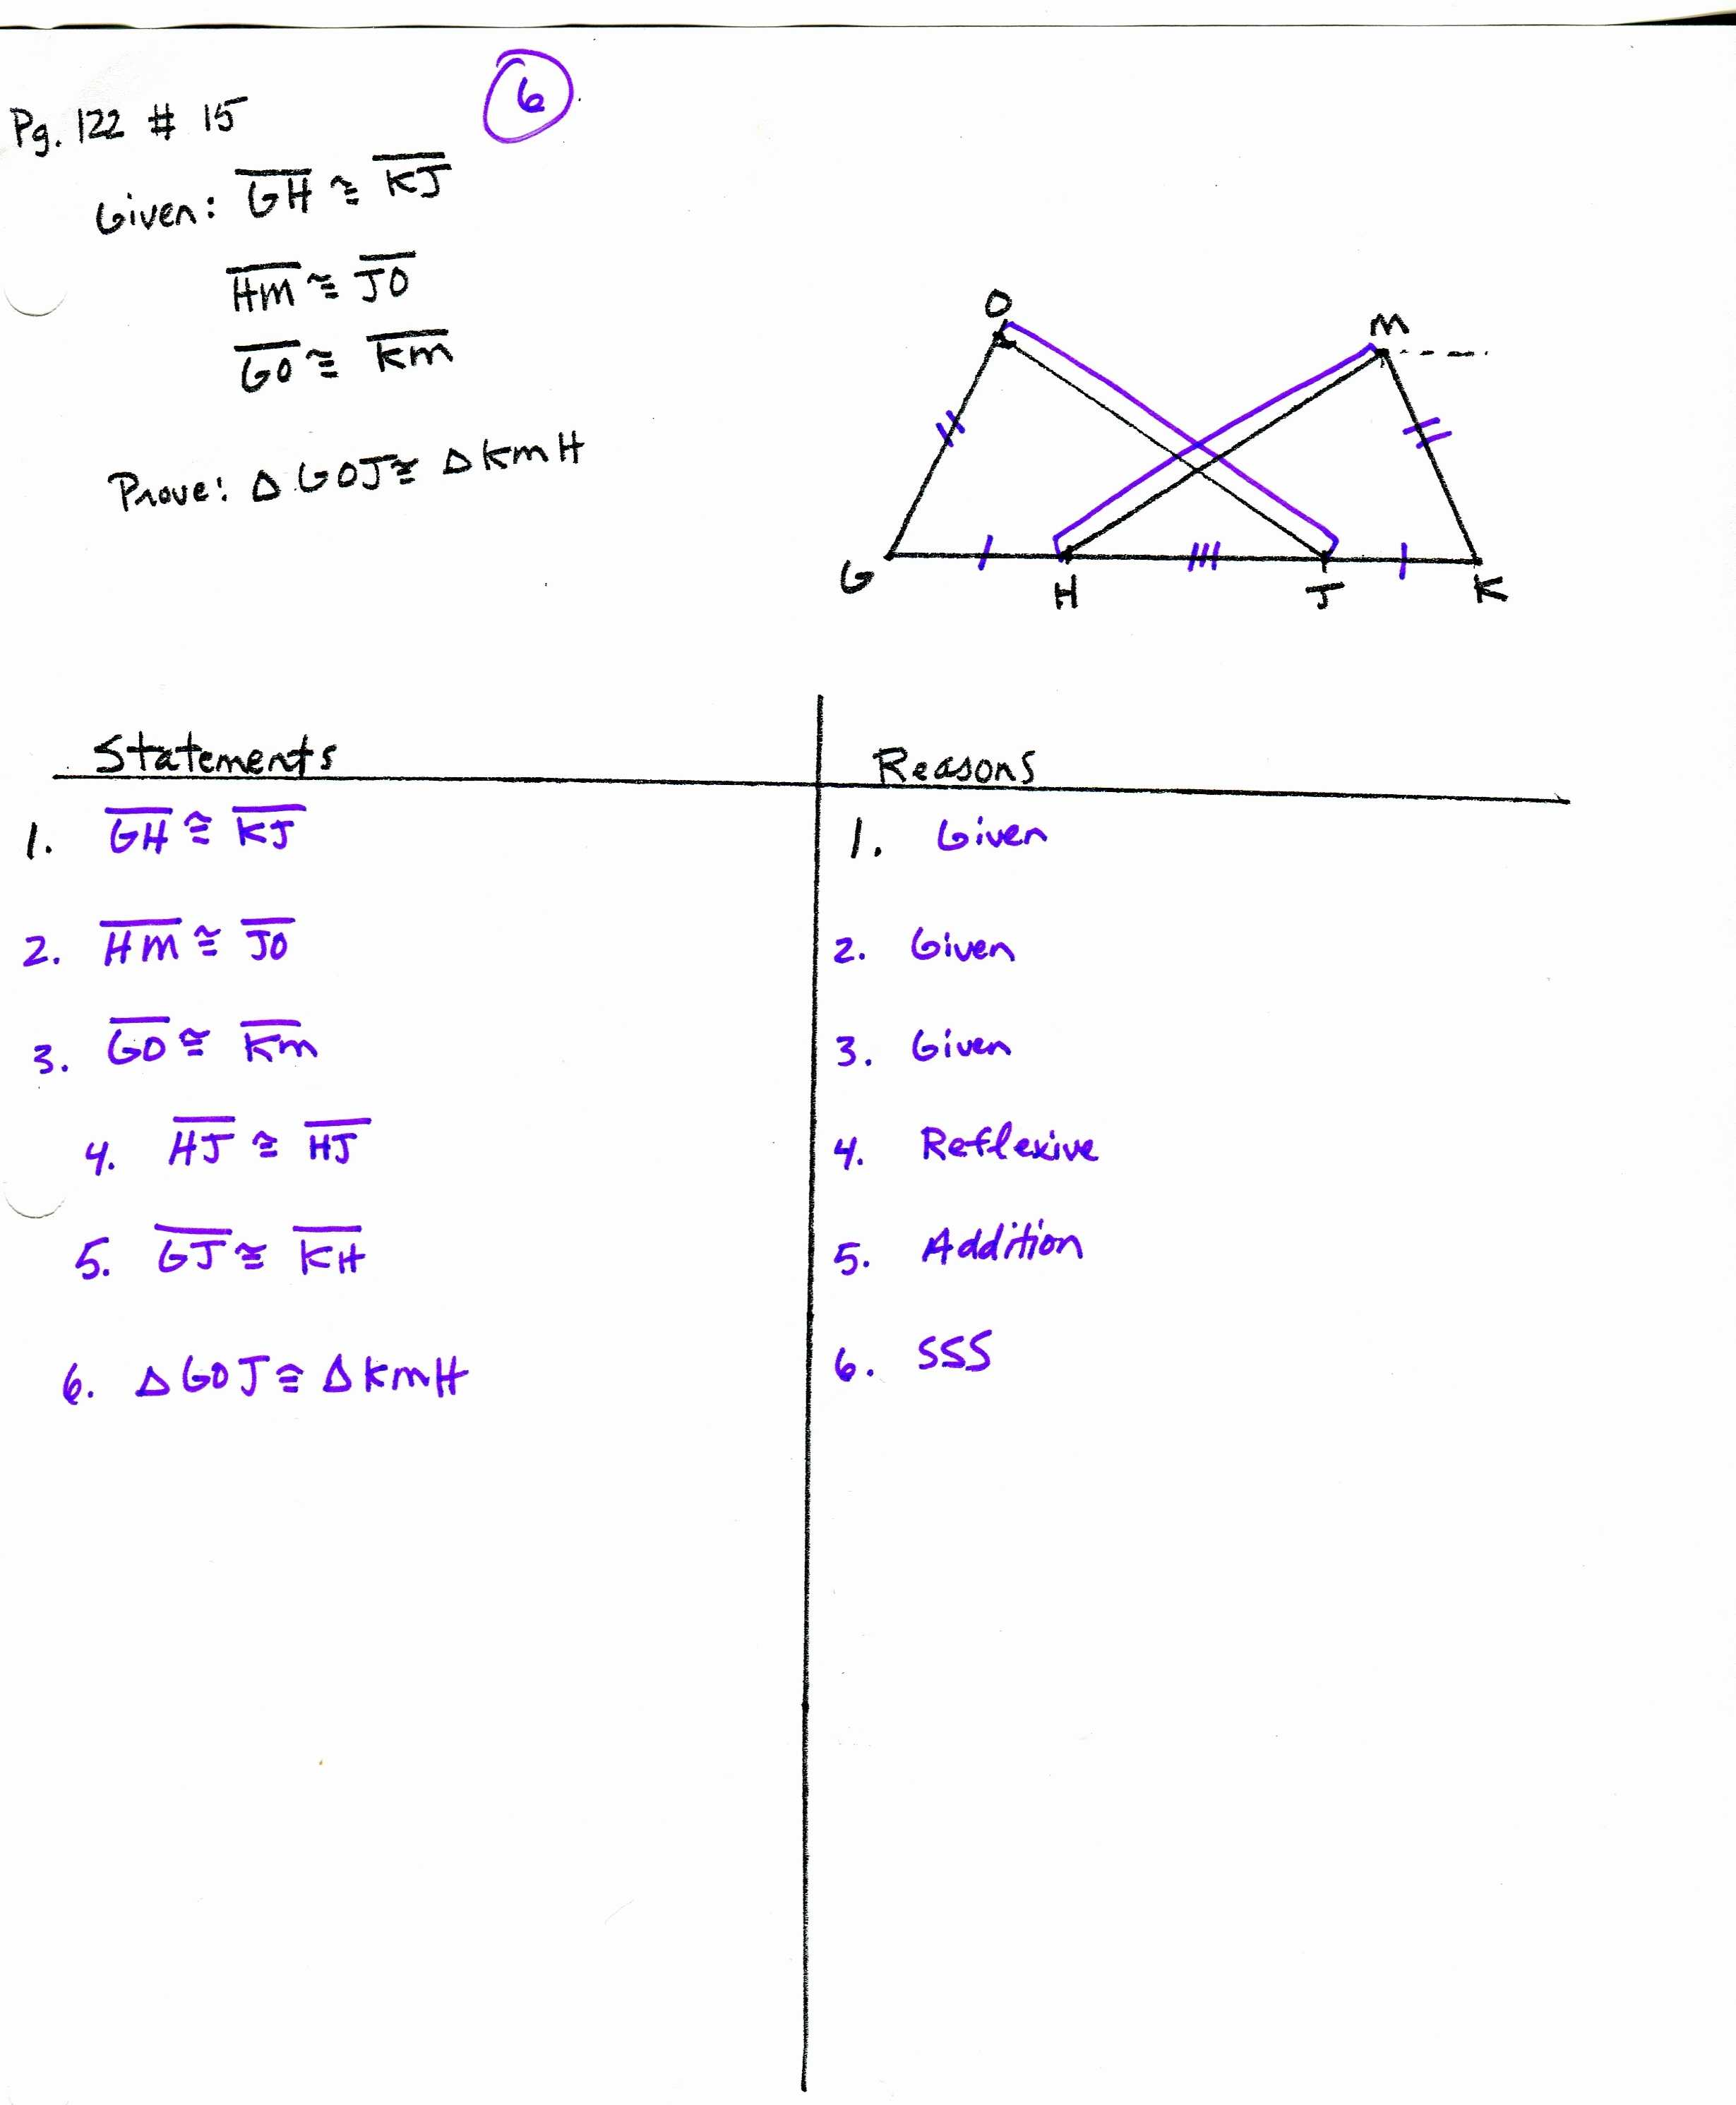 Geometry Worksheet Congruent Triangles Sss and Sas Answers Also Triangle Congruence Proofs Worksheet Image Collections Worksheet